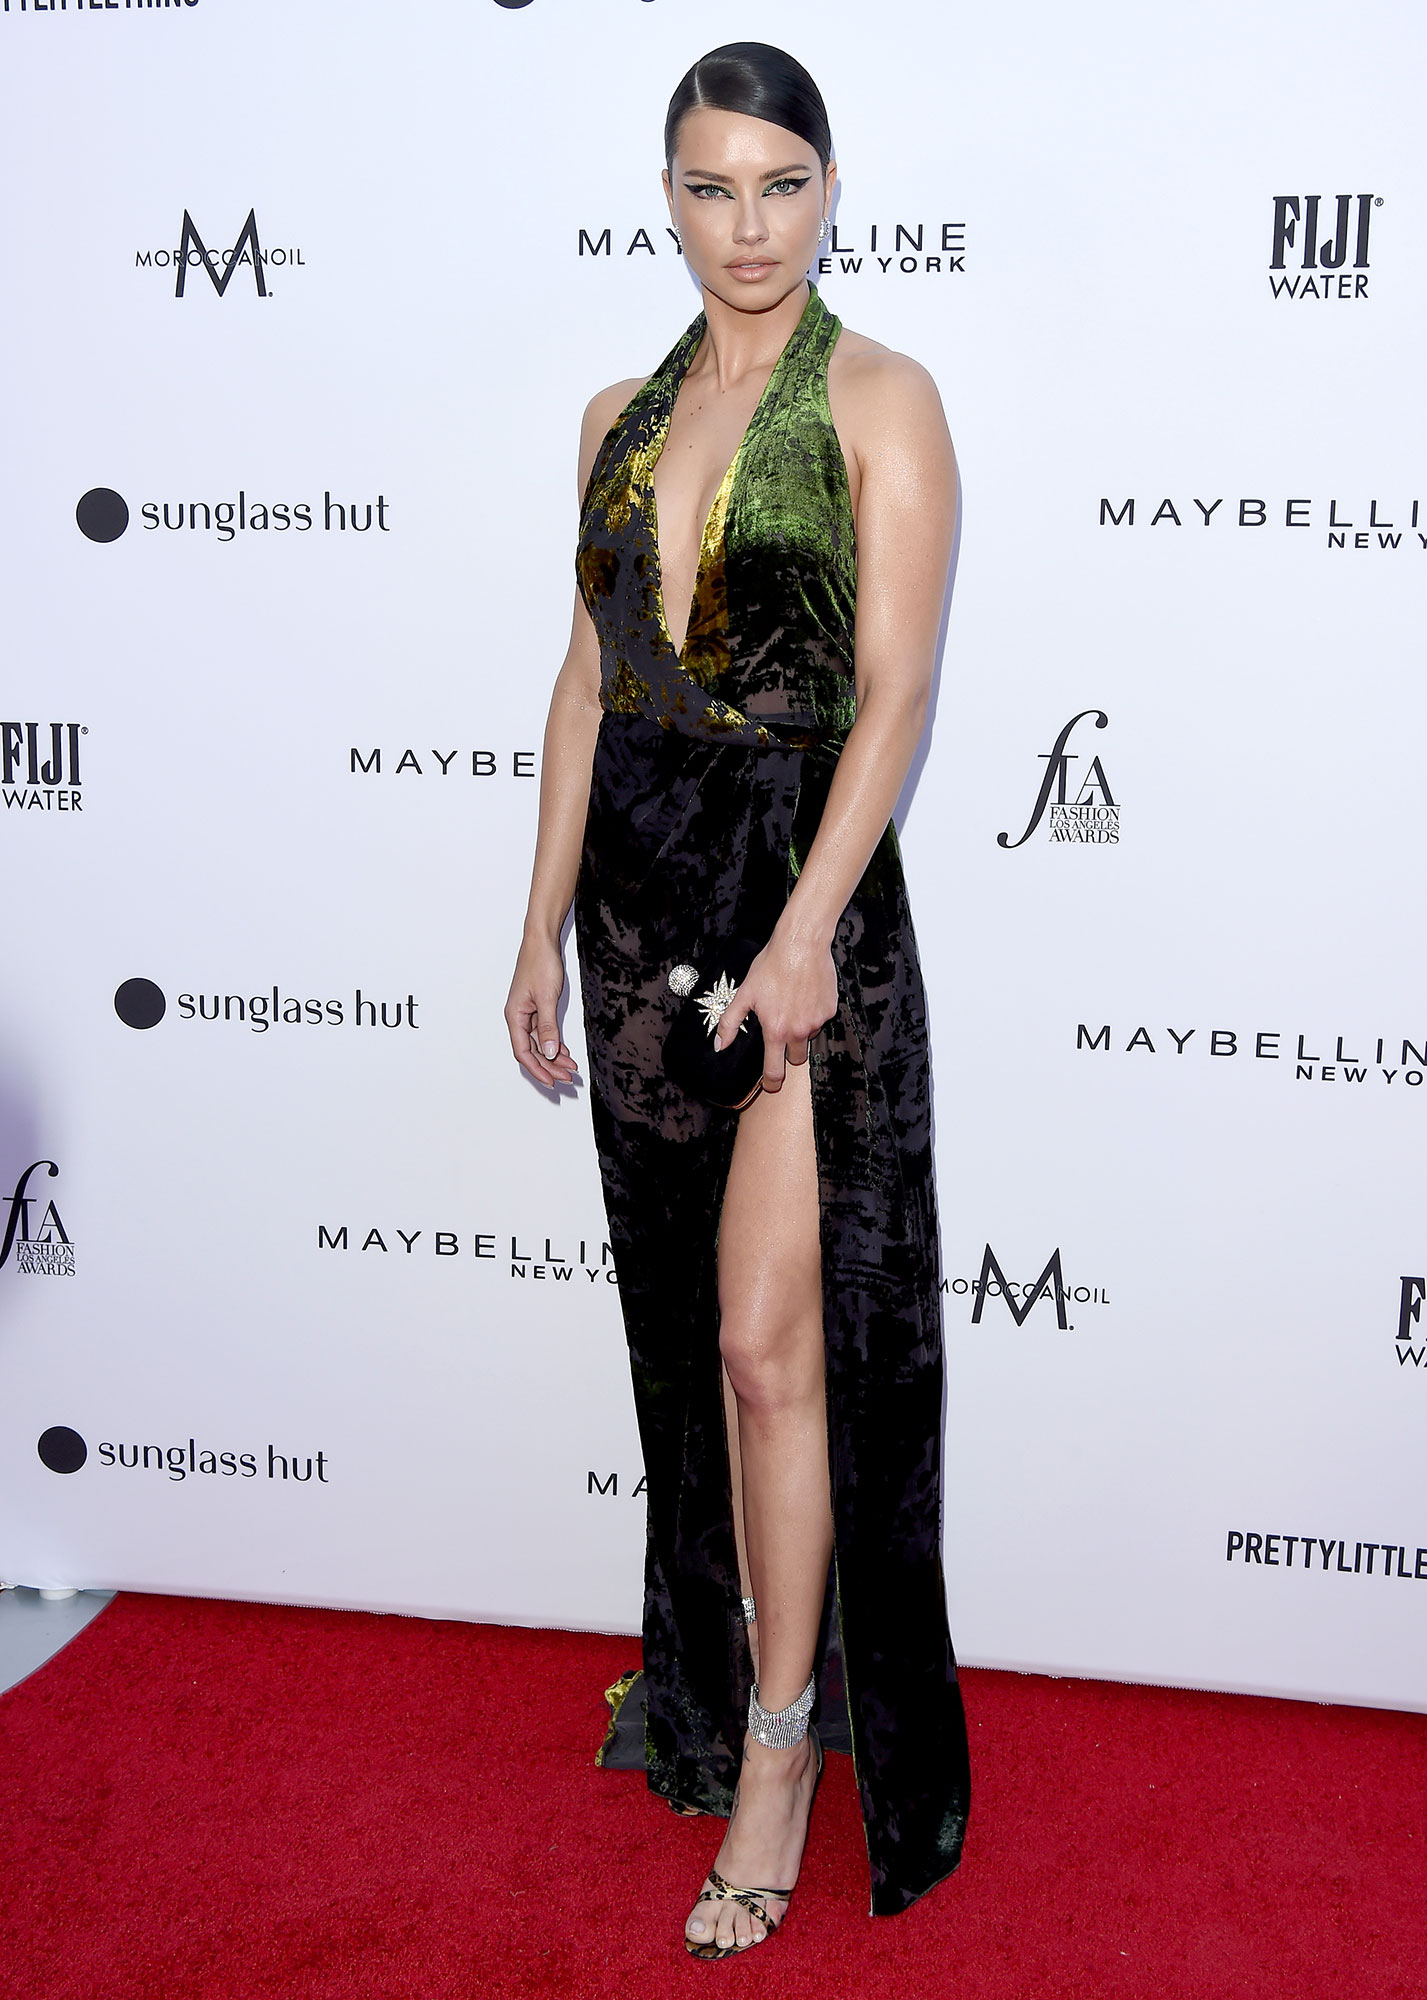 Stars Brought Their Style A-Game to the Daily Front Row Fashion Awards - Flaunting her toned limbs, the former Victoria Secret model wore a reptilian print dress with a thigh-high slit and plunging neckline.